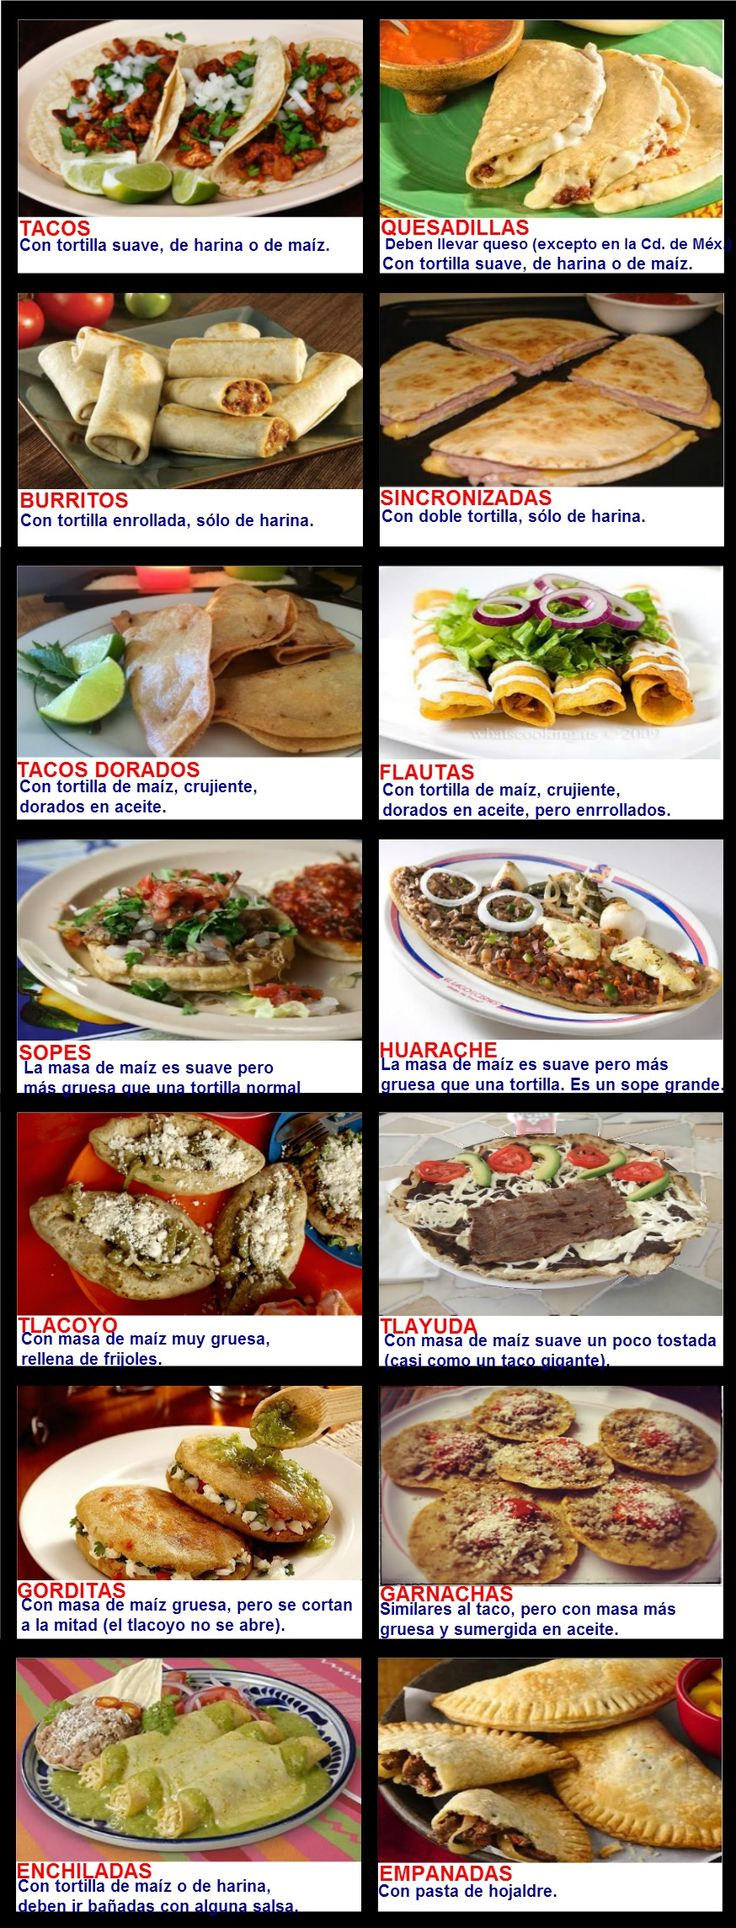 Mexican food differences. Tacos / Quesadillas / Burritos / Sincronizadas / Tacos Dorados / Flautas / Sopes / Huarache / Tlacoyo / Tlayuda / Gorditas / Garnachas / Enchiladas / Empanadas